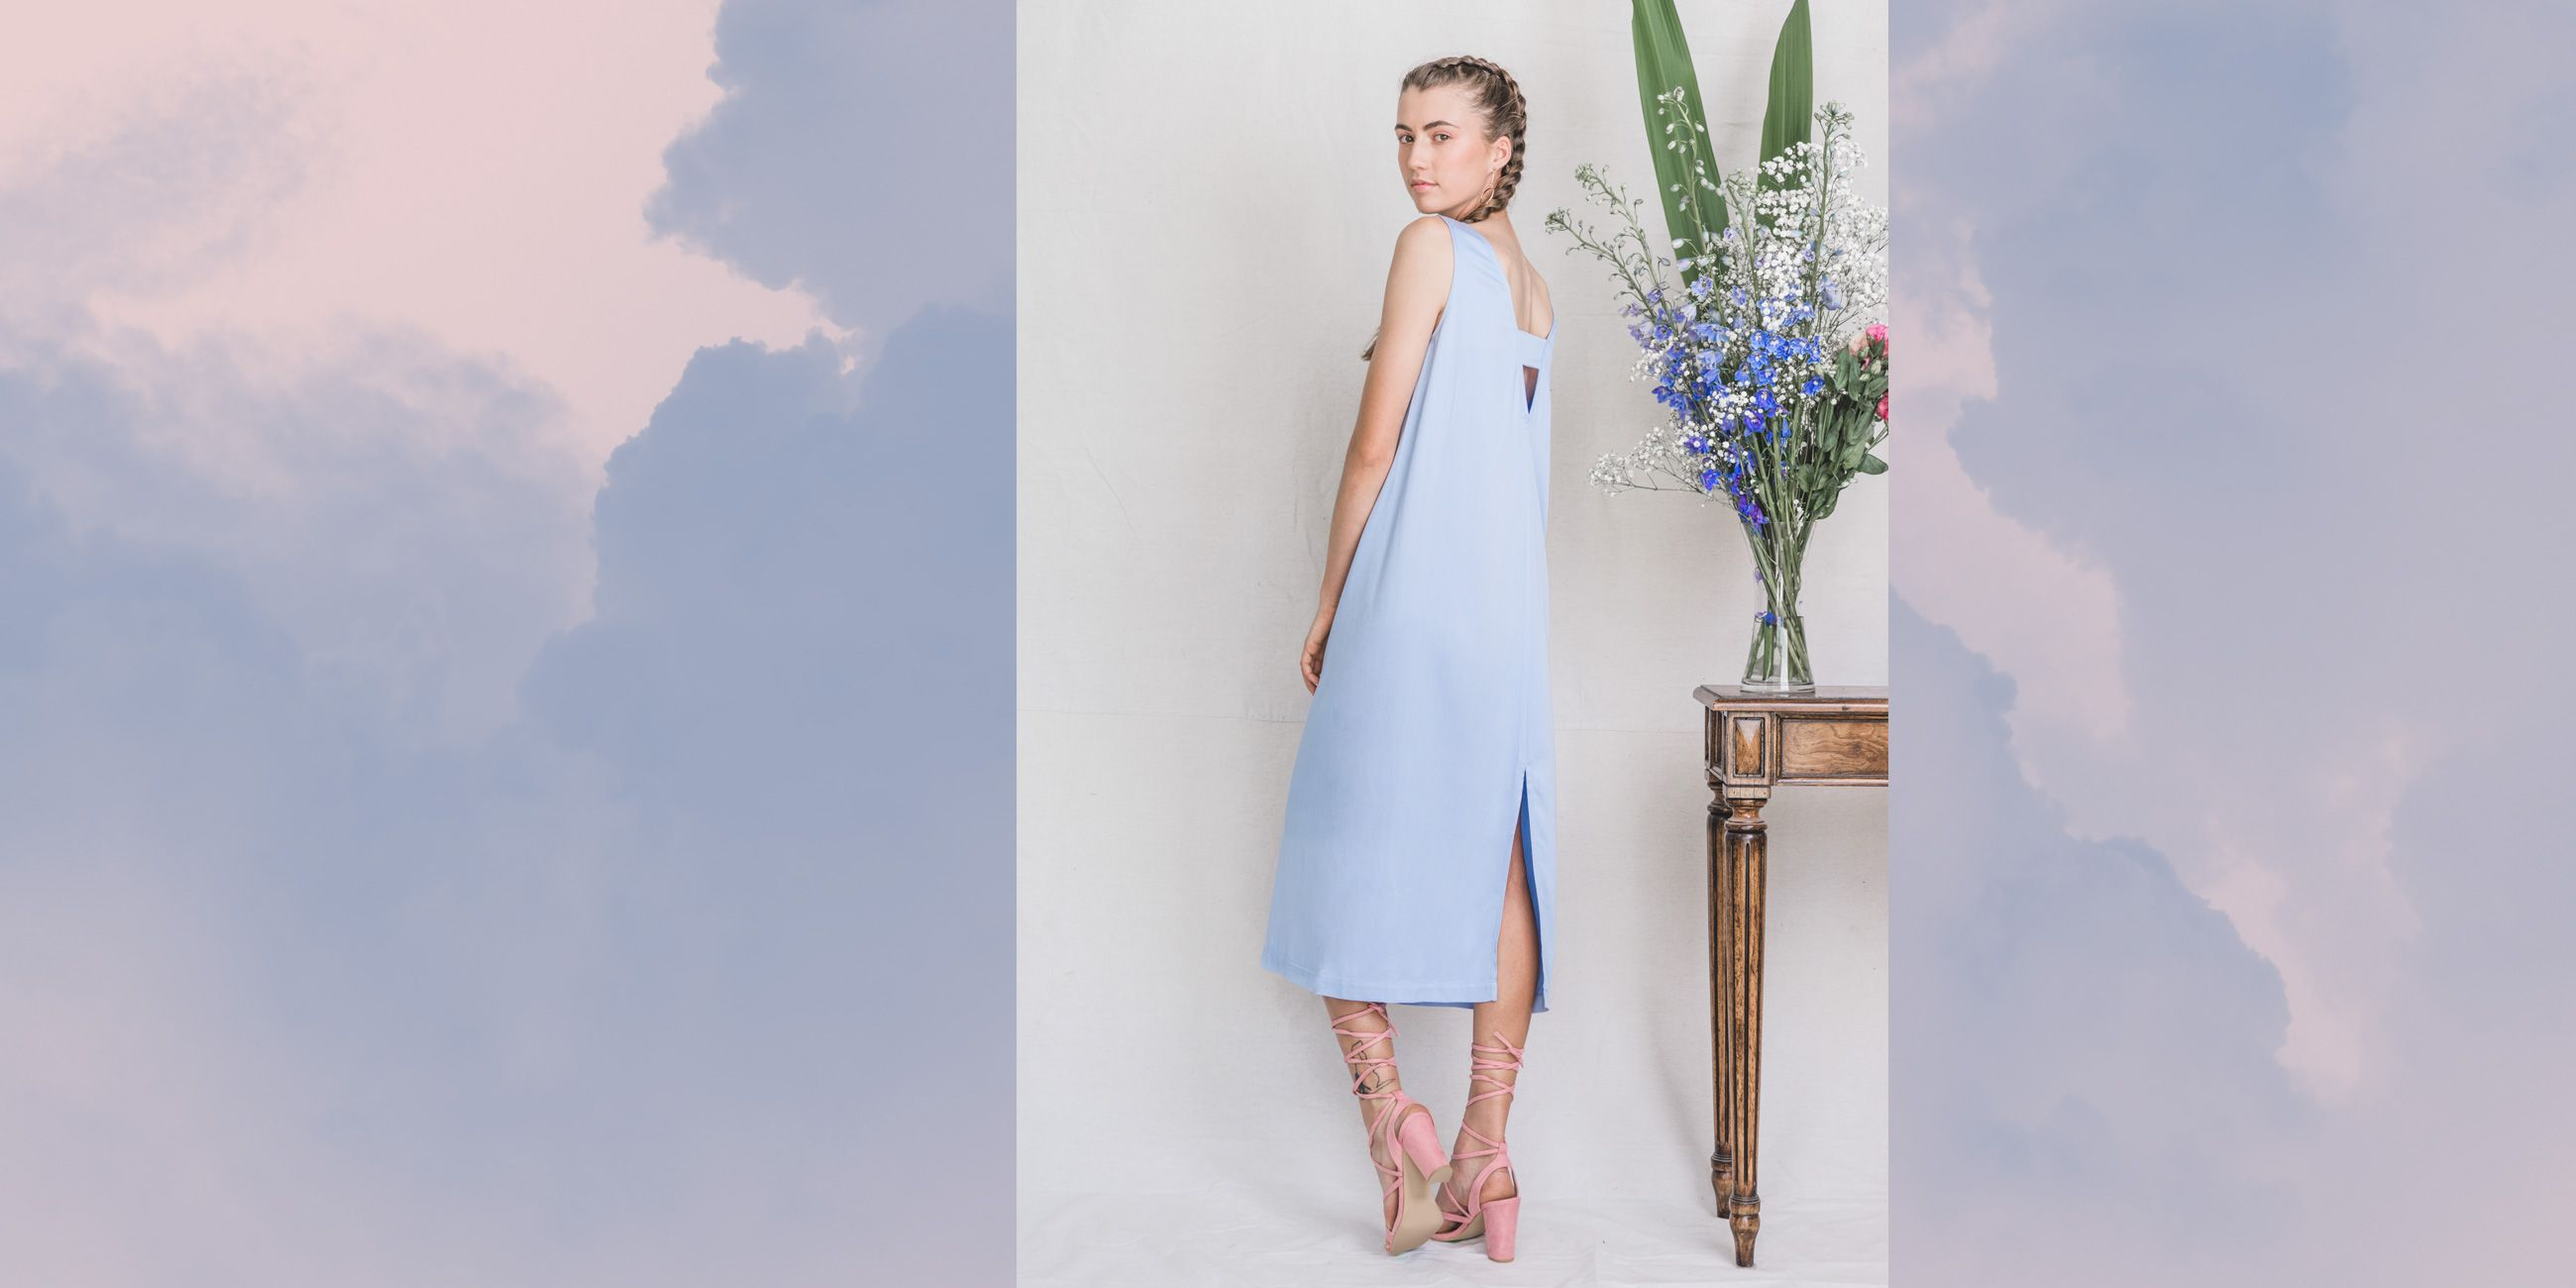 Hydrus Bamboo Dress Serenity Blue – The Great Beyond 2